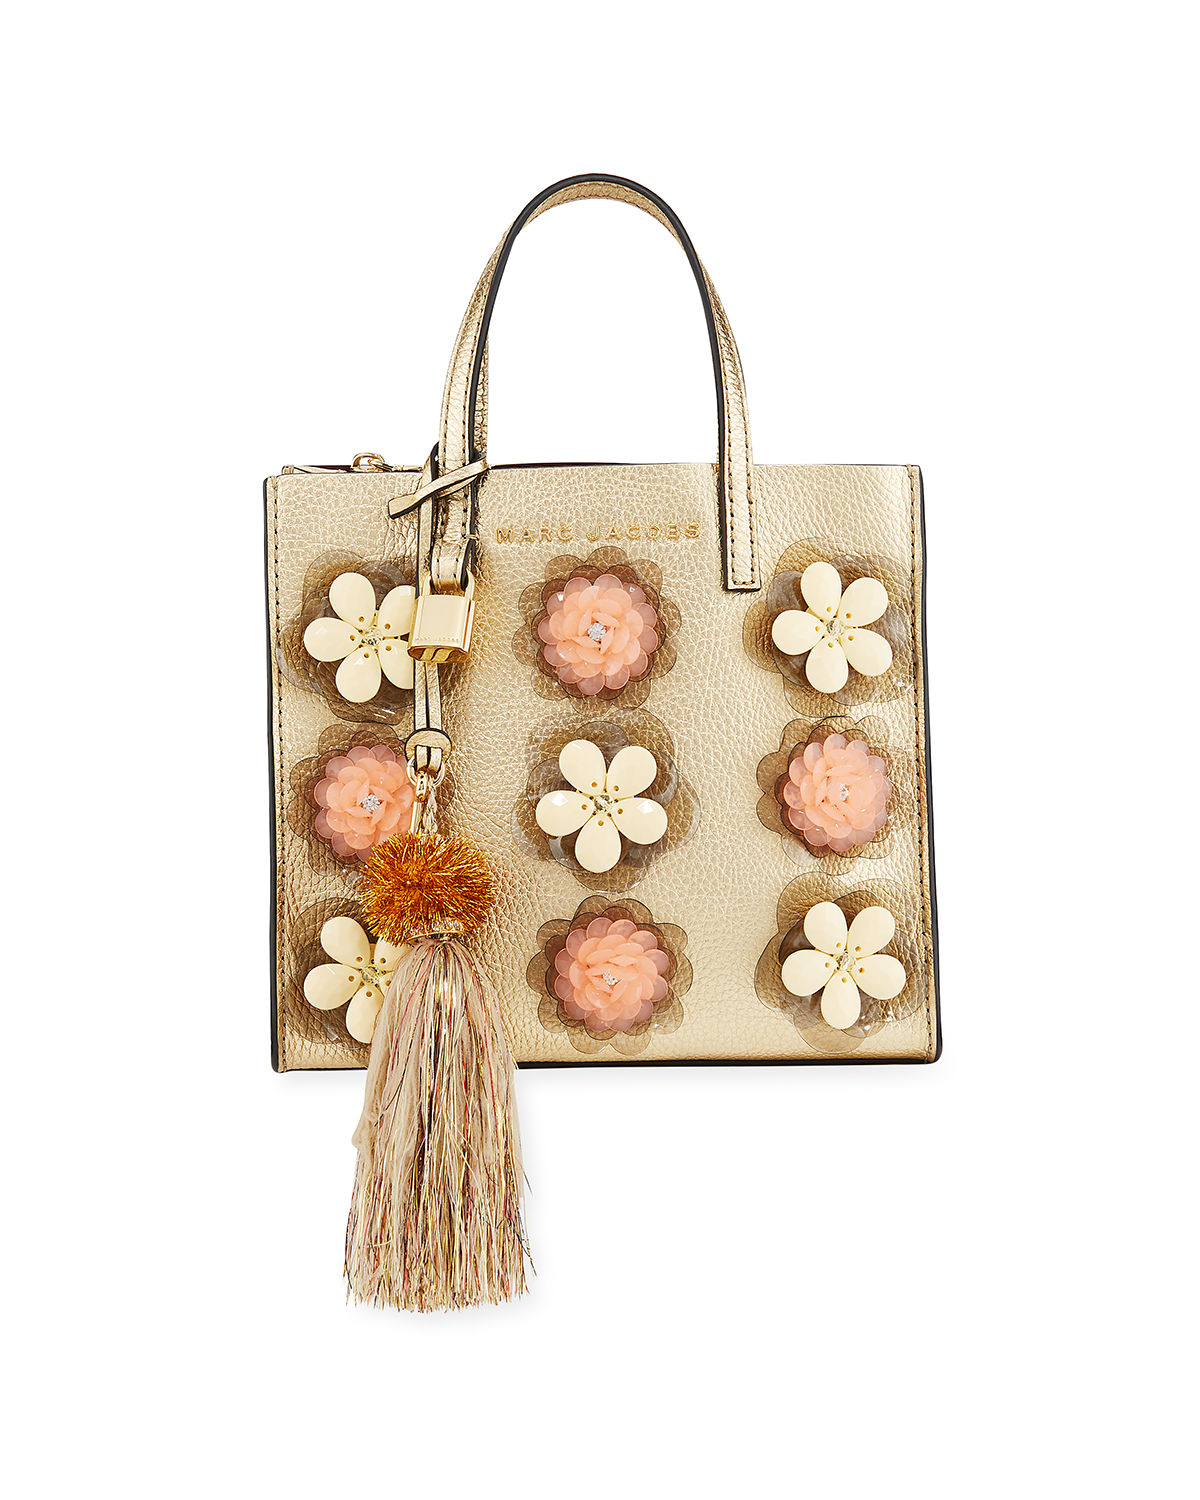 The Grind Flower Embellished Tote Bag